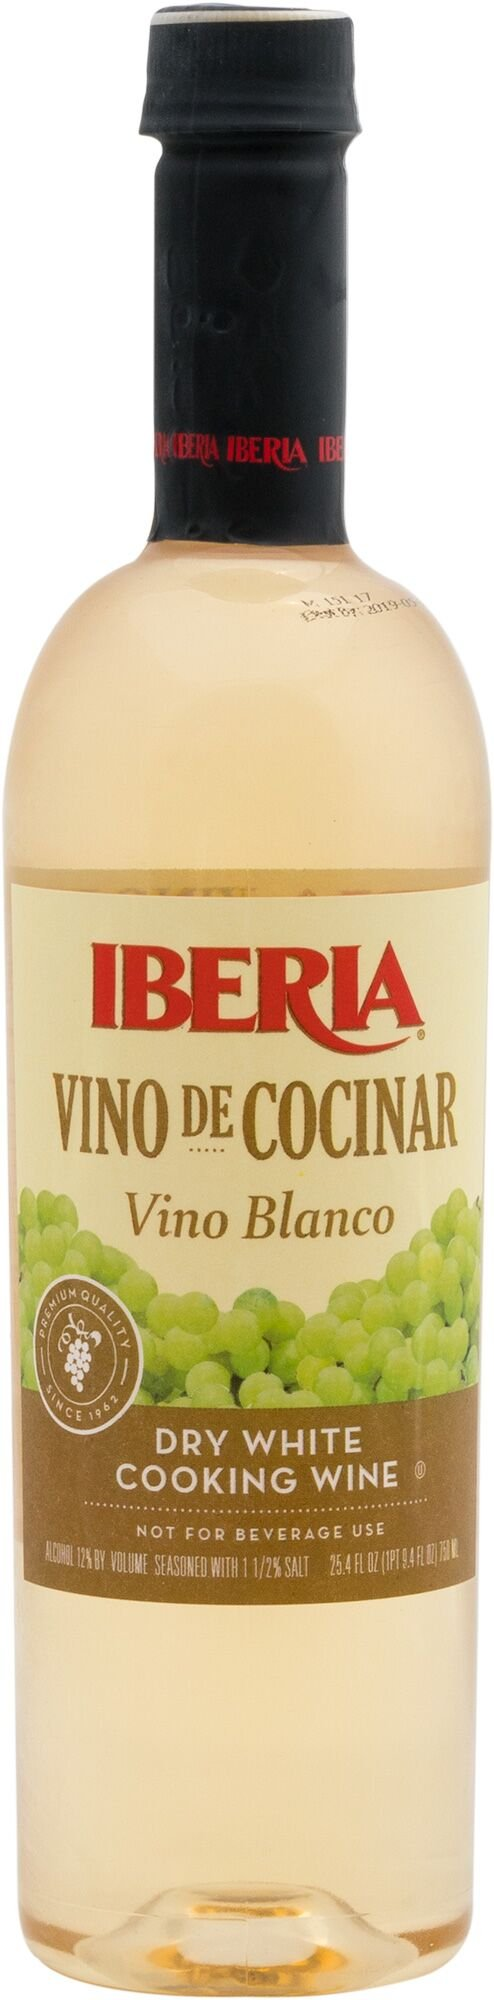 Iberia White Cooking Wine, 25.4 Ounce (Pack of 12) by IBERIA